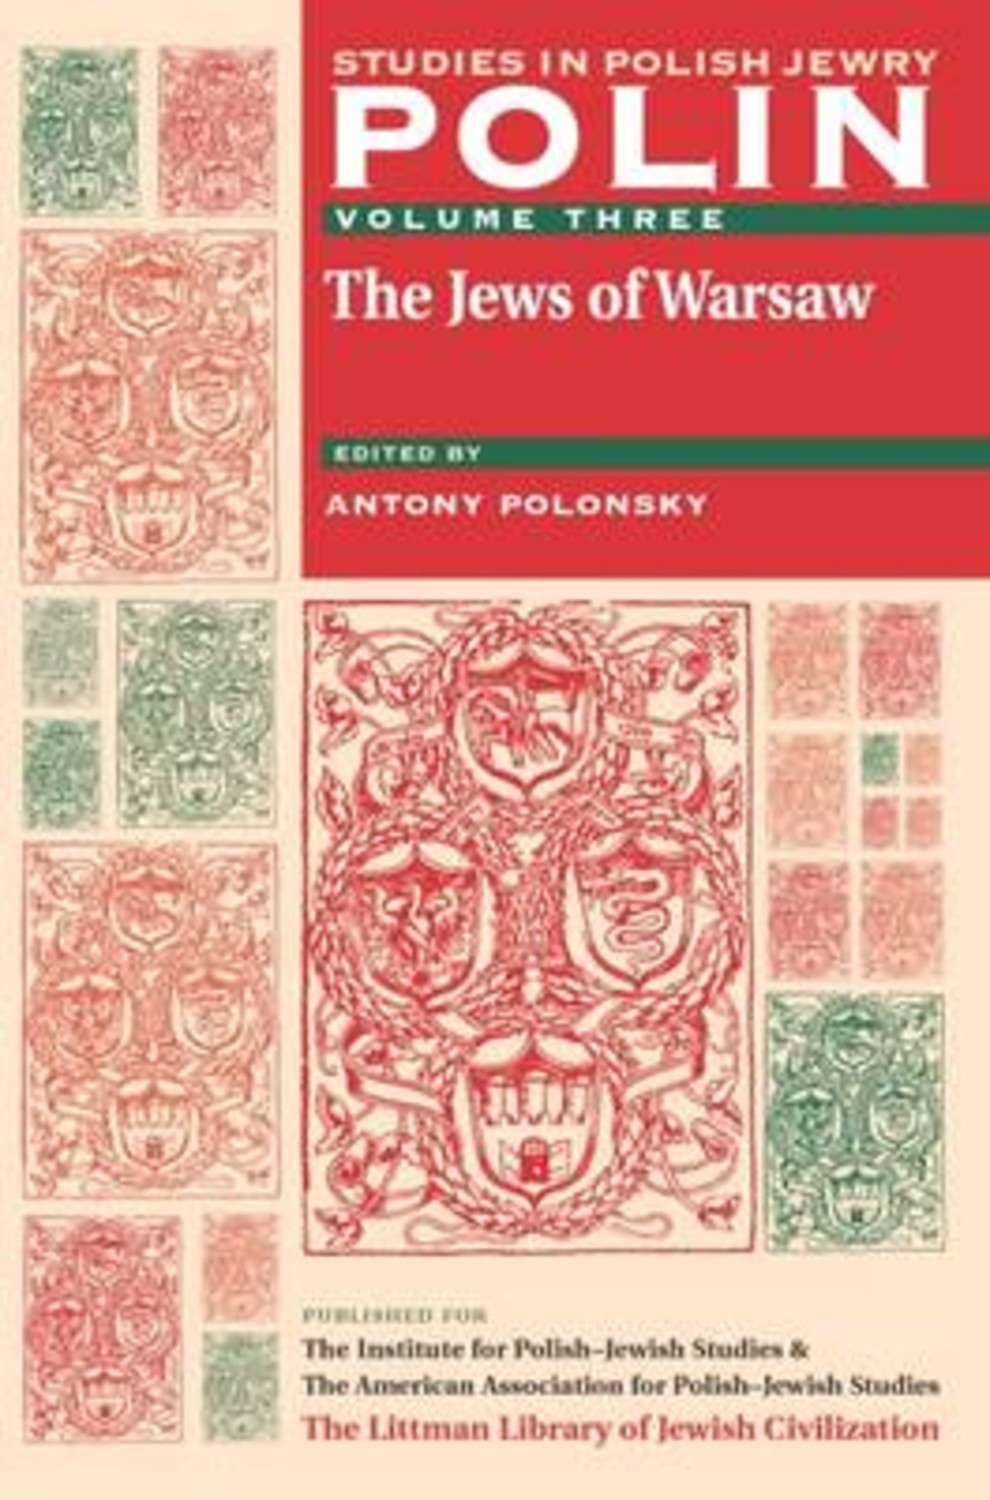 Polin: Studies in Polish Jewry Volume 3